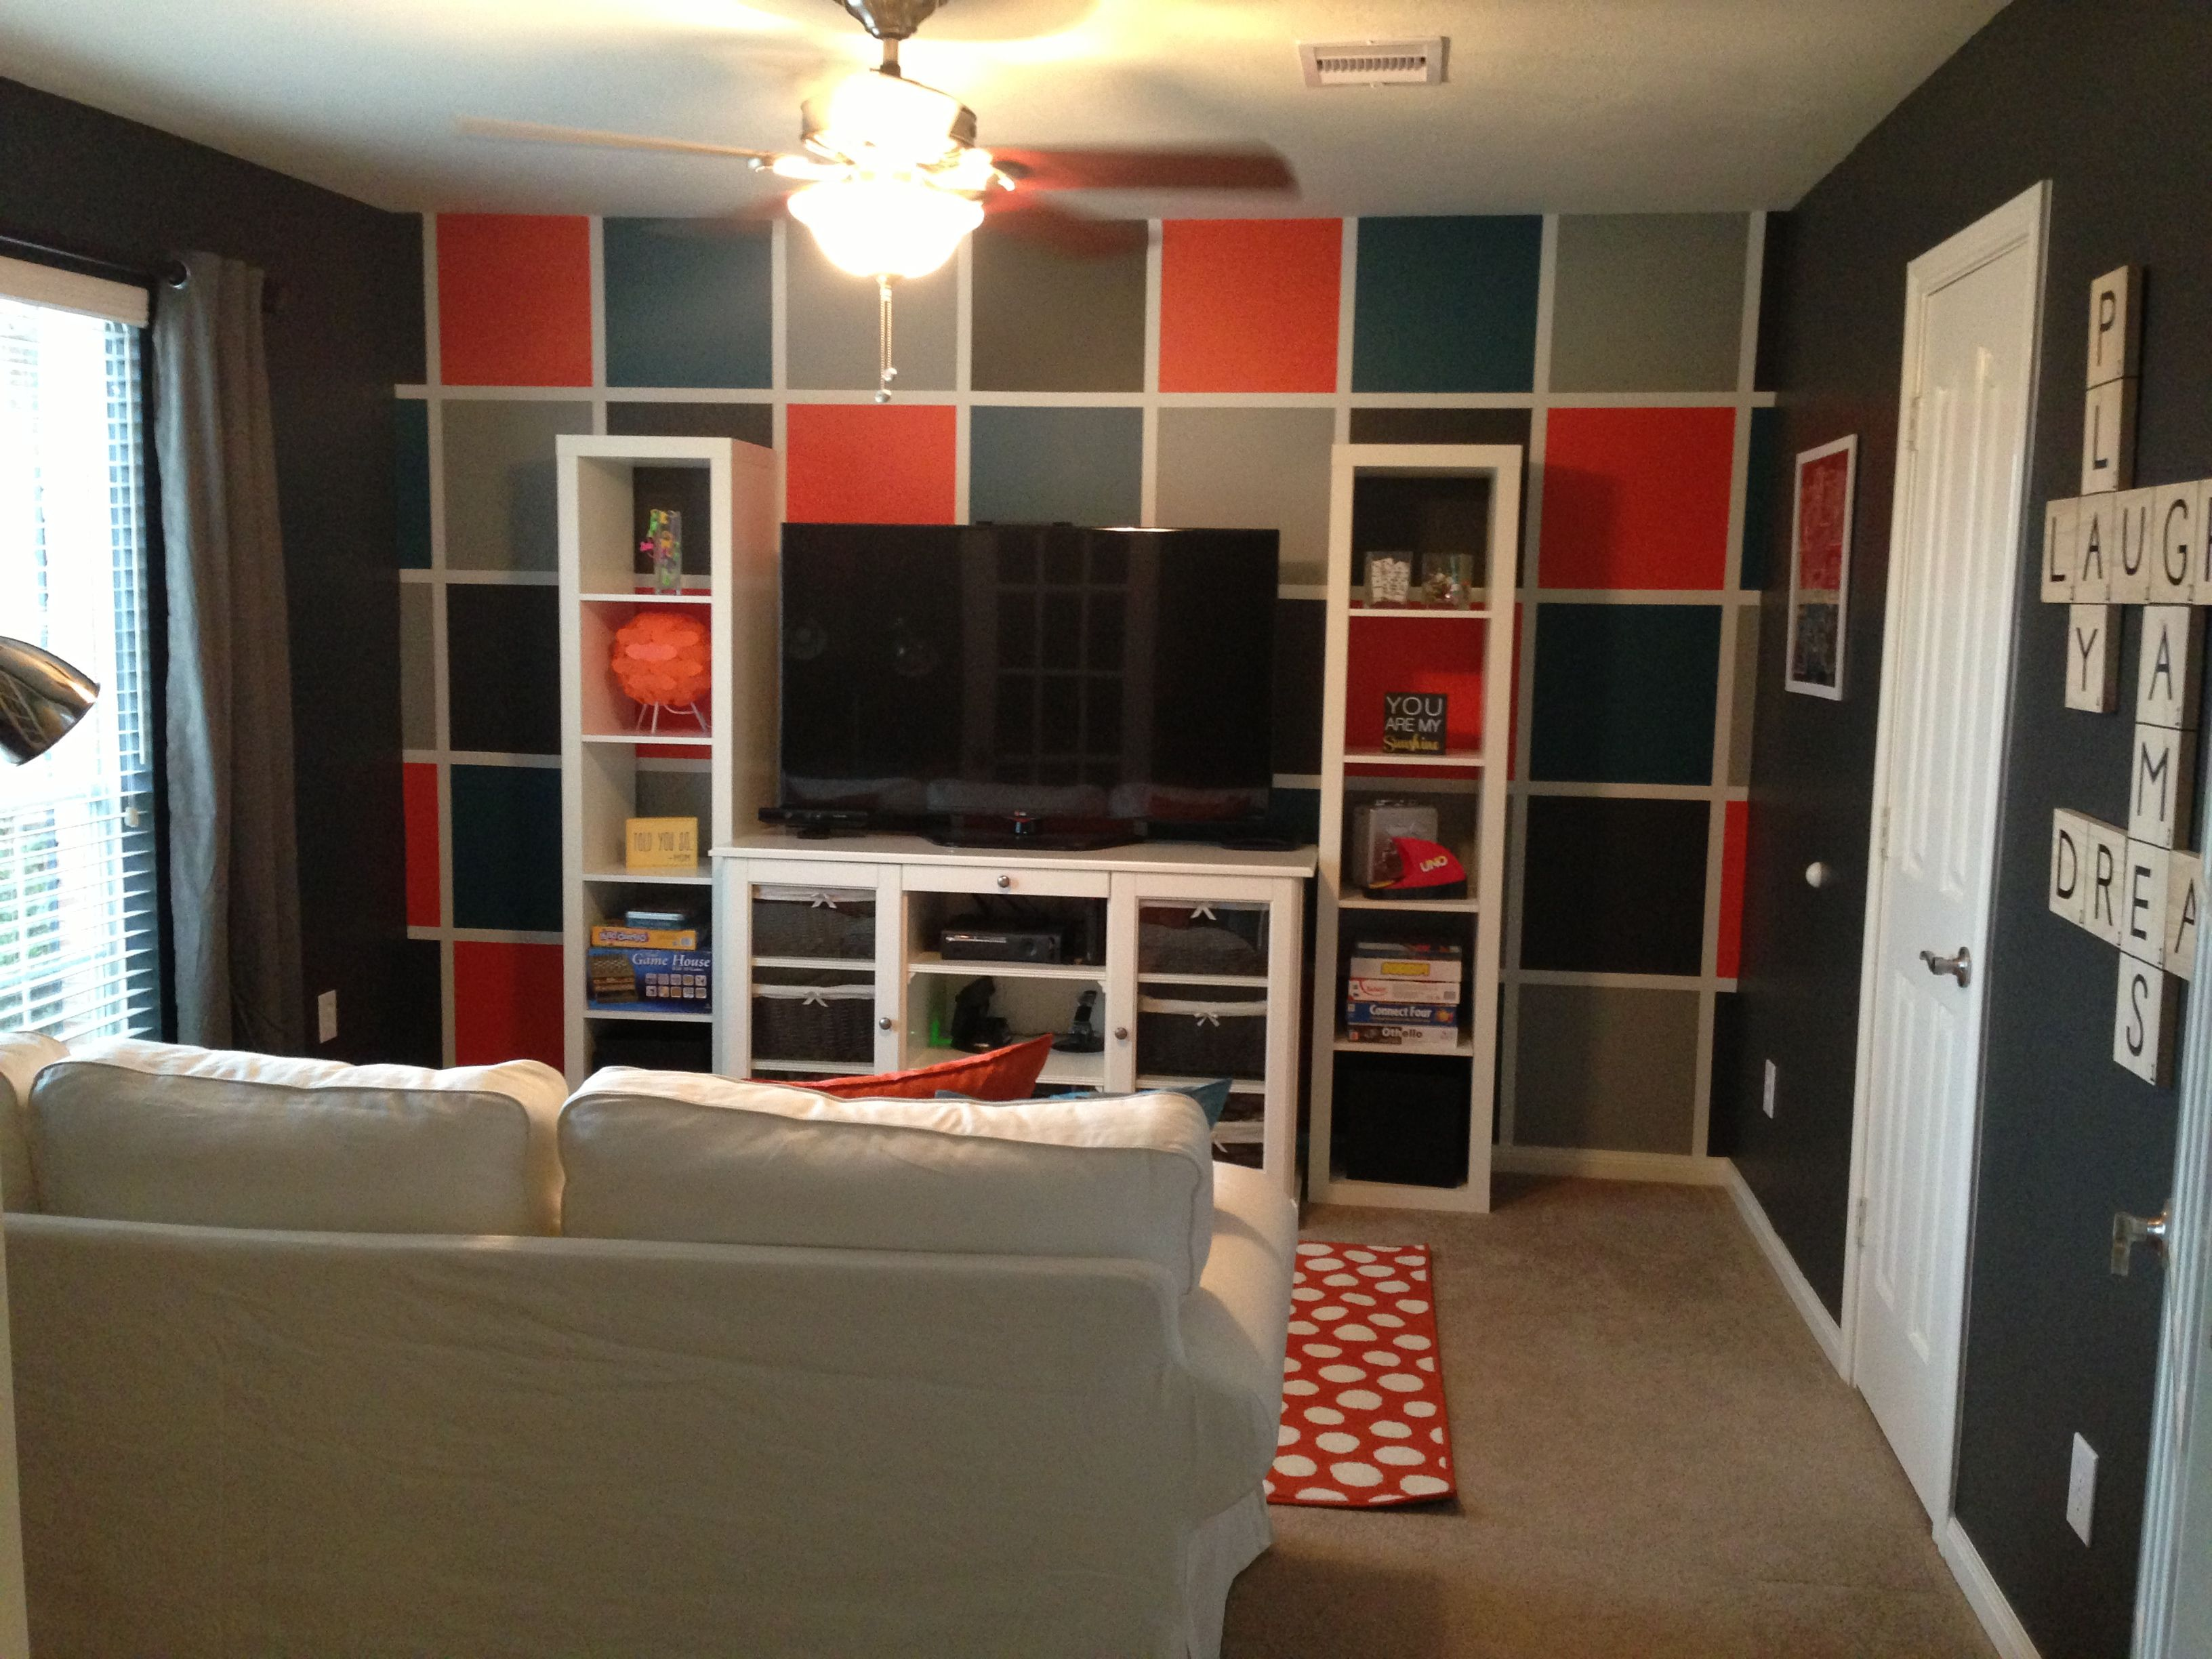 After all, the area will be used for playing games. Pin on Kid playrooms